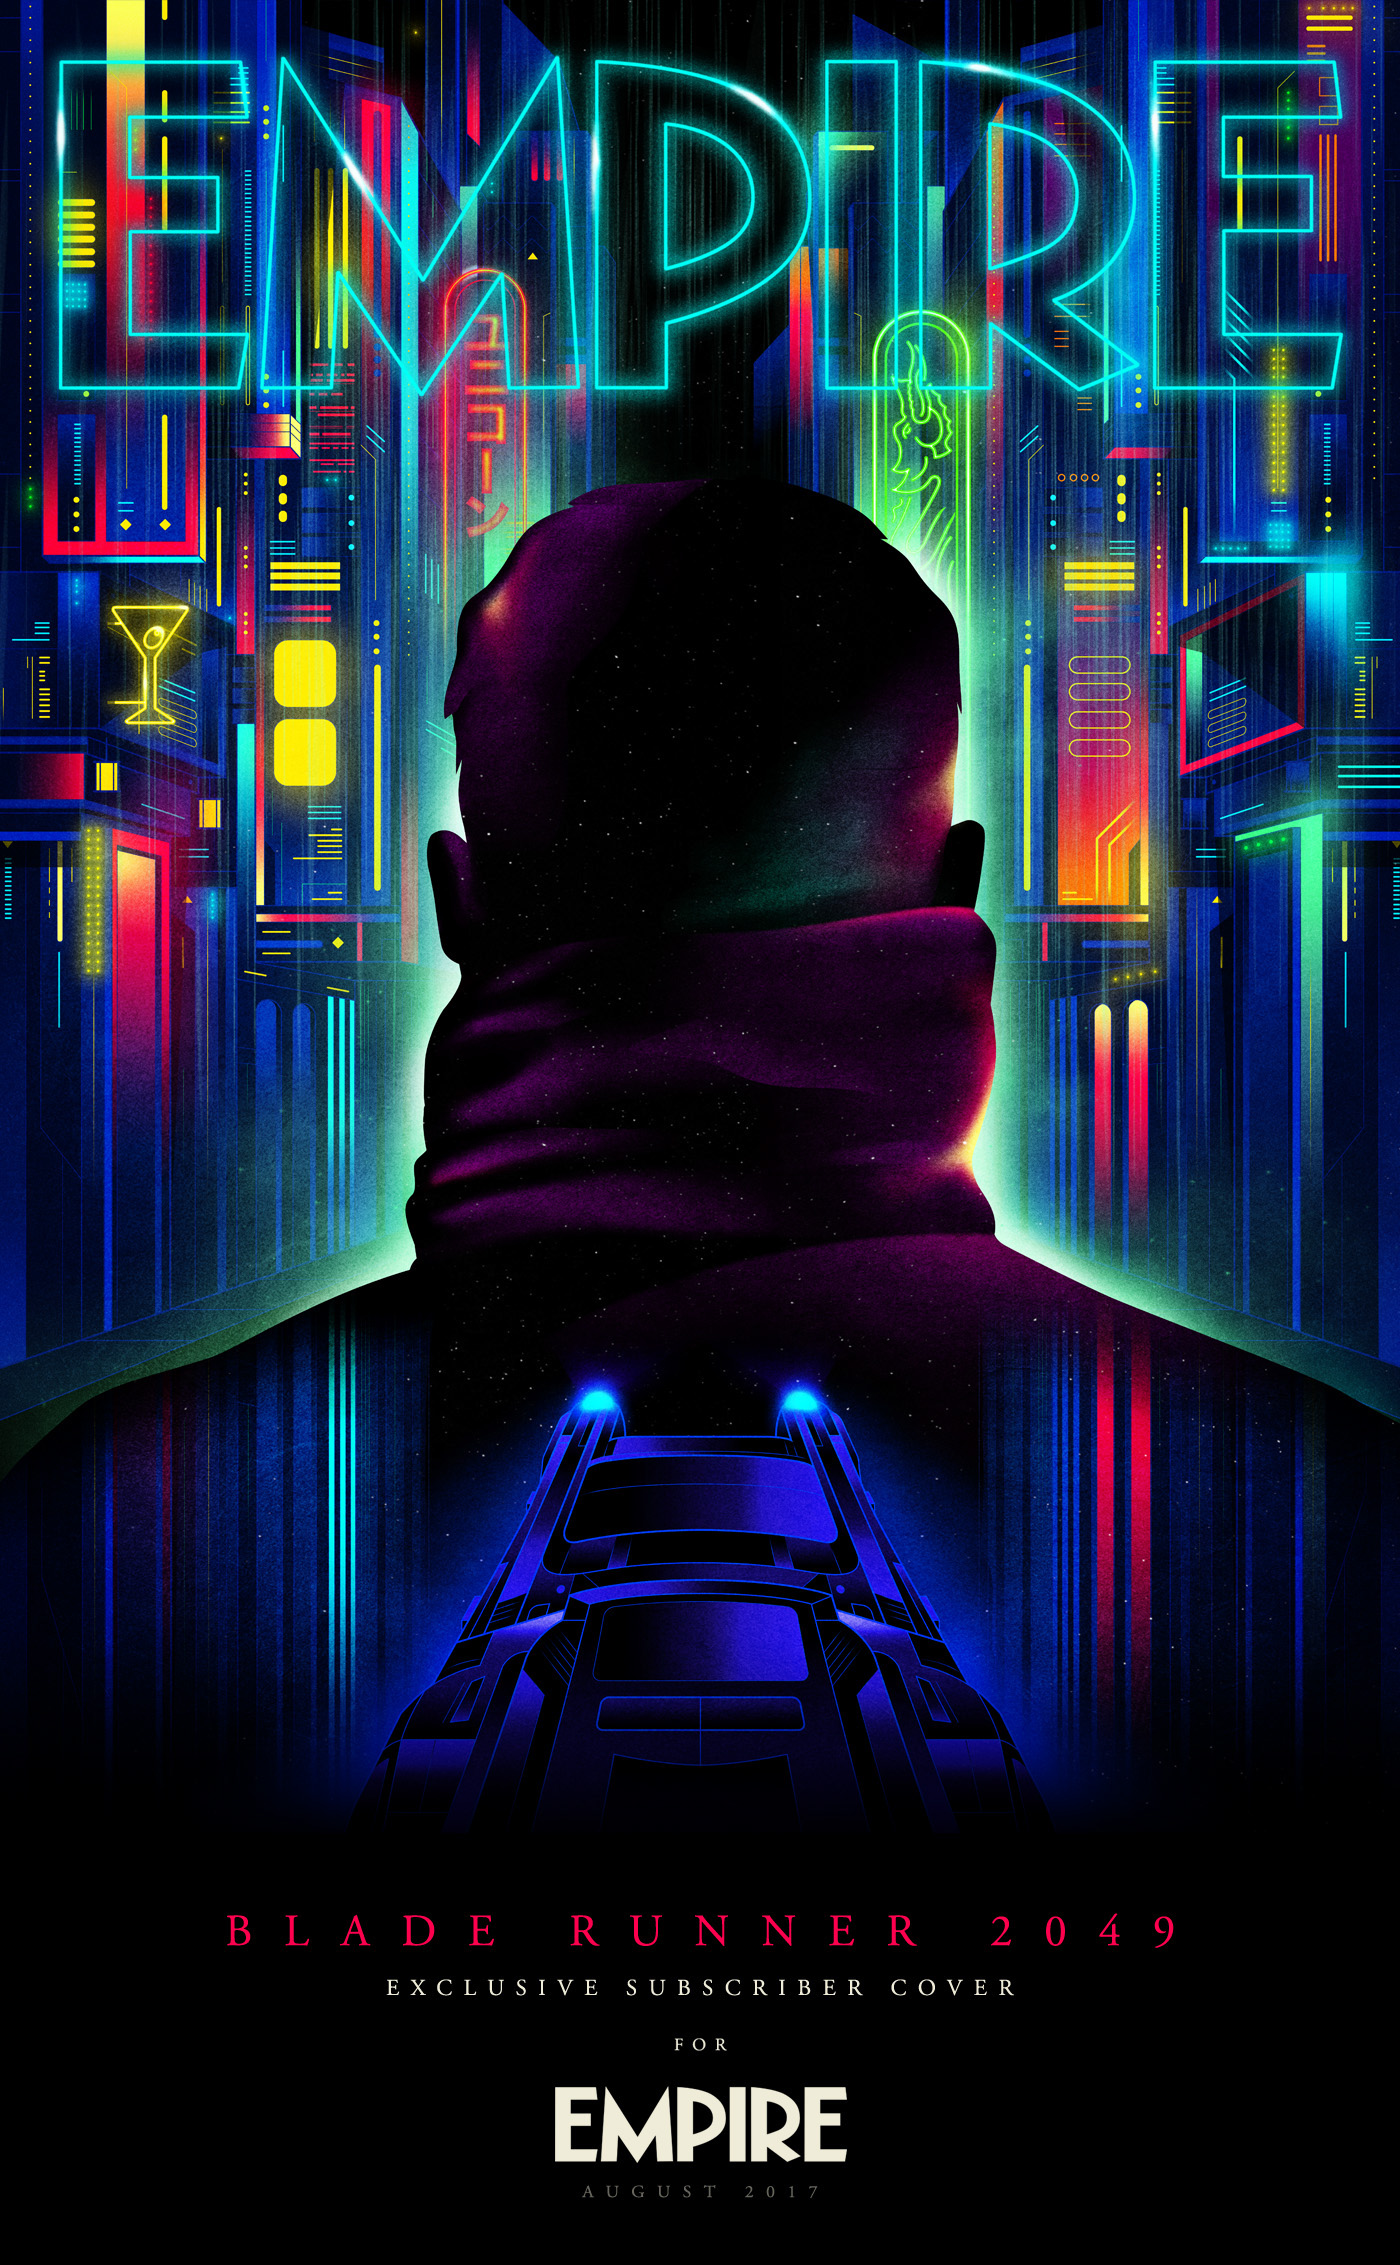 Art Tributes for the upcoming Blade Runner 2049 movie